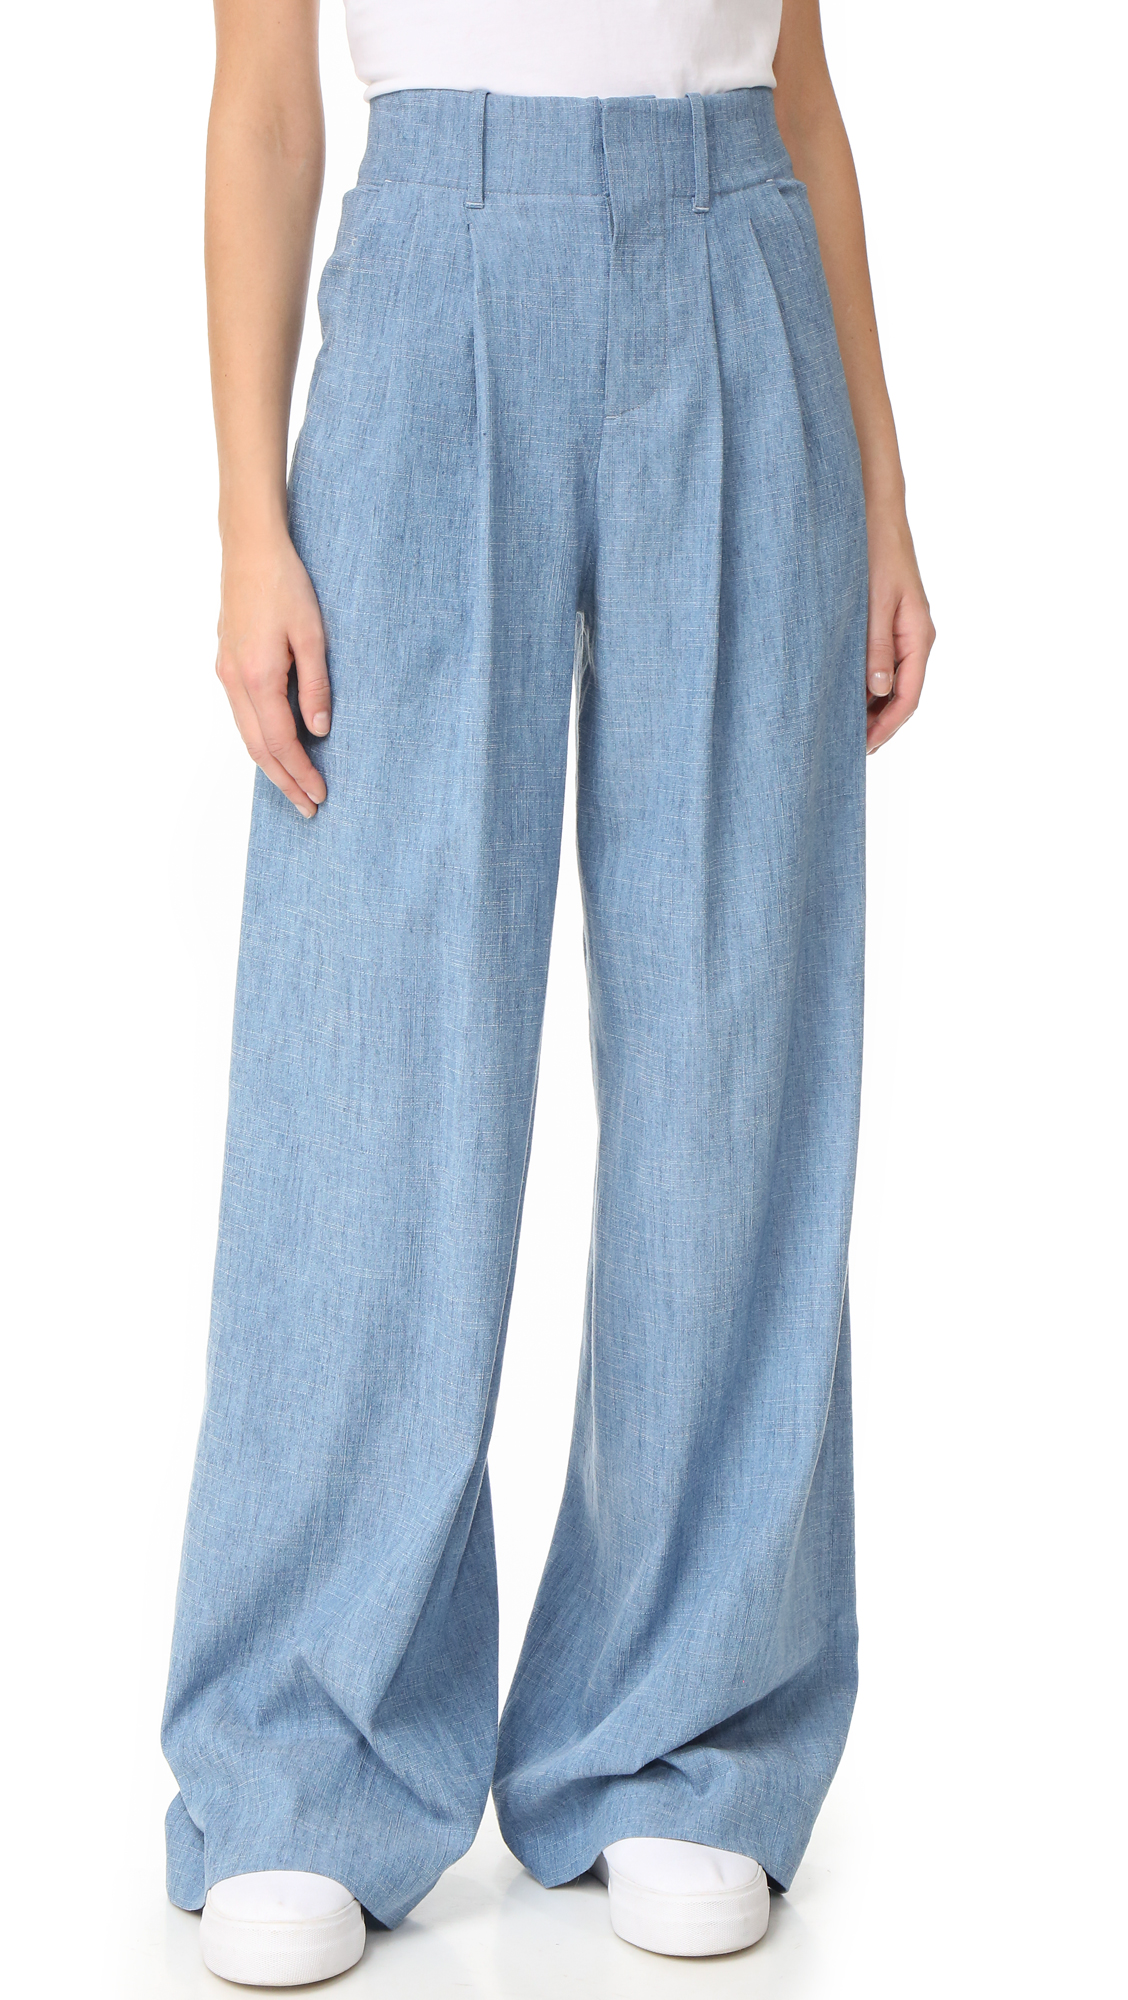 Long rise alice + olivia pants in a dramatic wide leg profile. Slant front pockets and welt back pockets. Hook and eye closure and zip fly. Fabric: Chambray. 62% lyocell/19% linen/19% polyester. Dry clean. Imported, China. Measurements Rise: 14